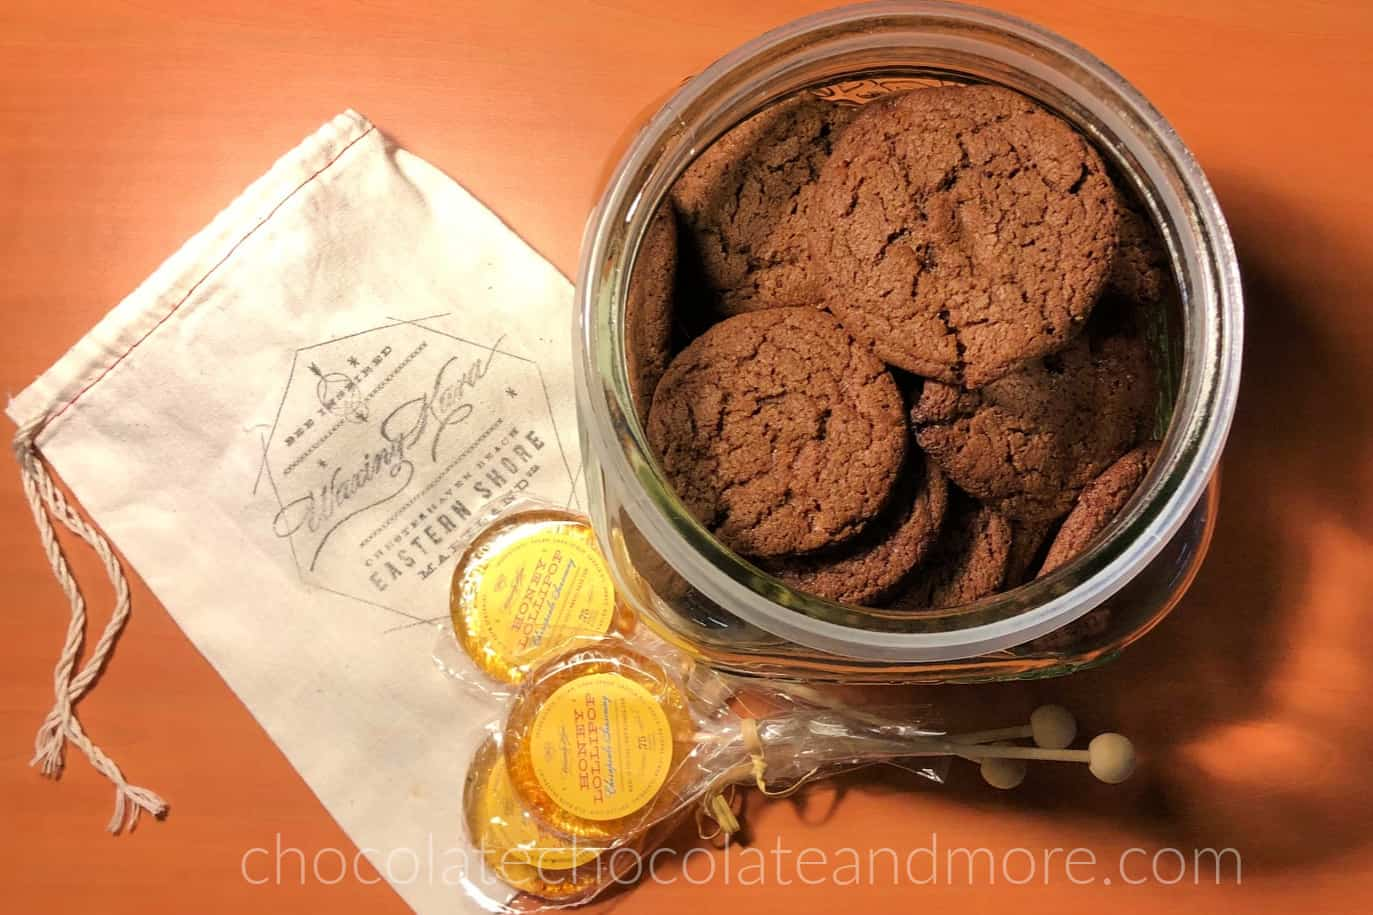 The top view of a glass cookie jar filled with chocolate cookies. Three lollipops are stacked in the front and a muslin sack is to the left. The muslin sack has the Waxing Kara logo on the front.